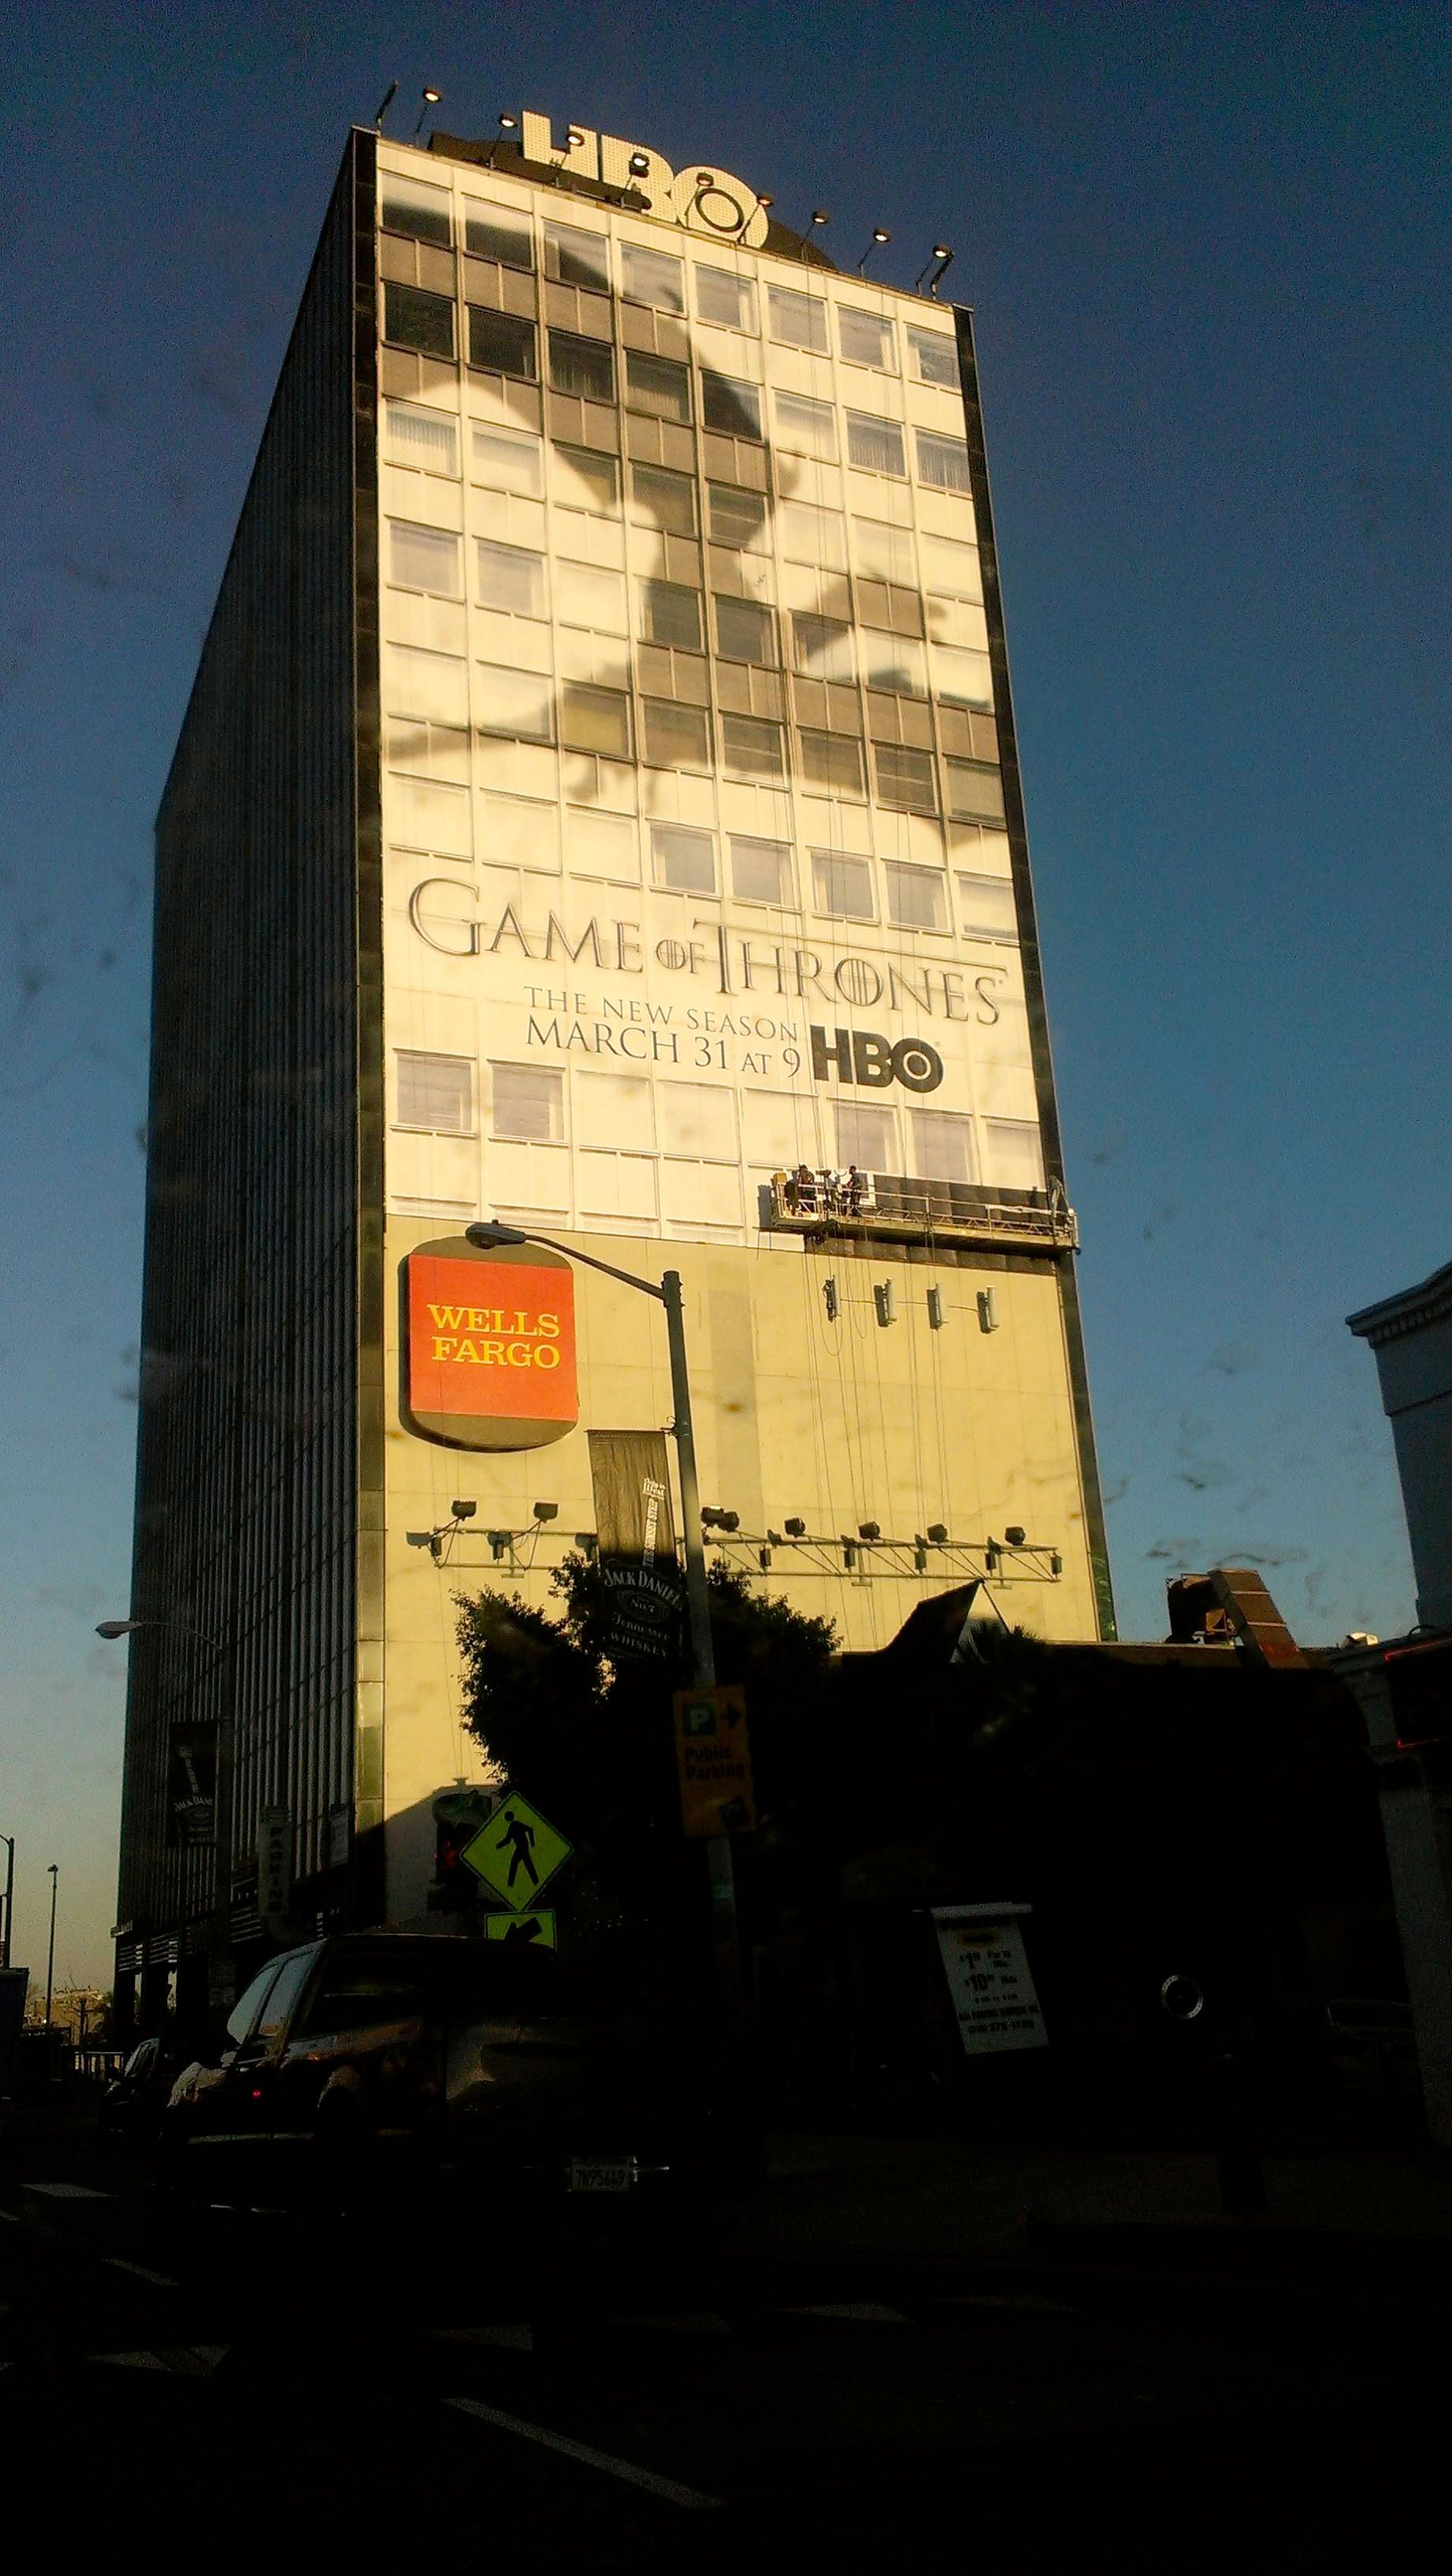 Hbo Goes Full Dragons Plasters The Season 3 Game Of Thrones Poster On Their Building Advertising Outdoor Hbo Go